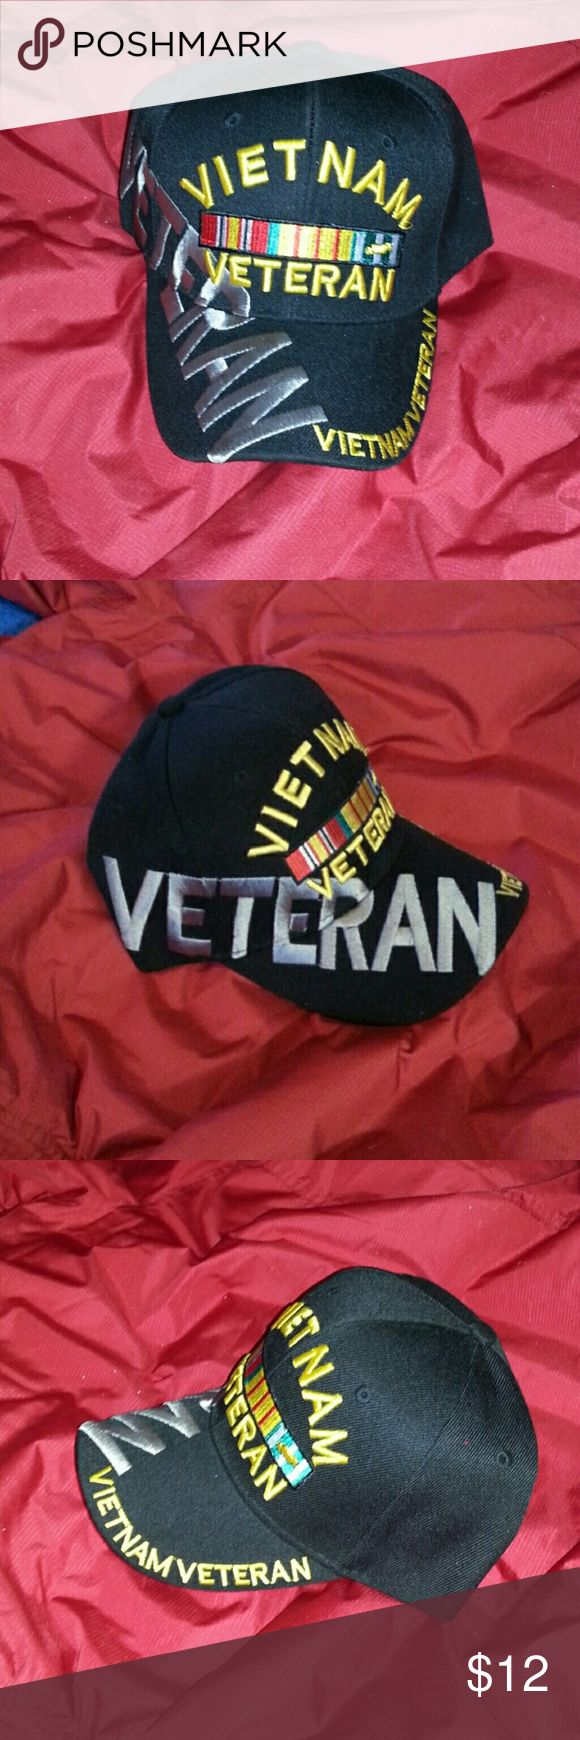 Vietnam Veteran hat Snapback Vietnam Veteran hat, brand new! Great gift for a loved one or a collector! Accessories Hats